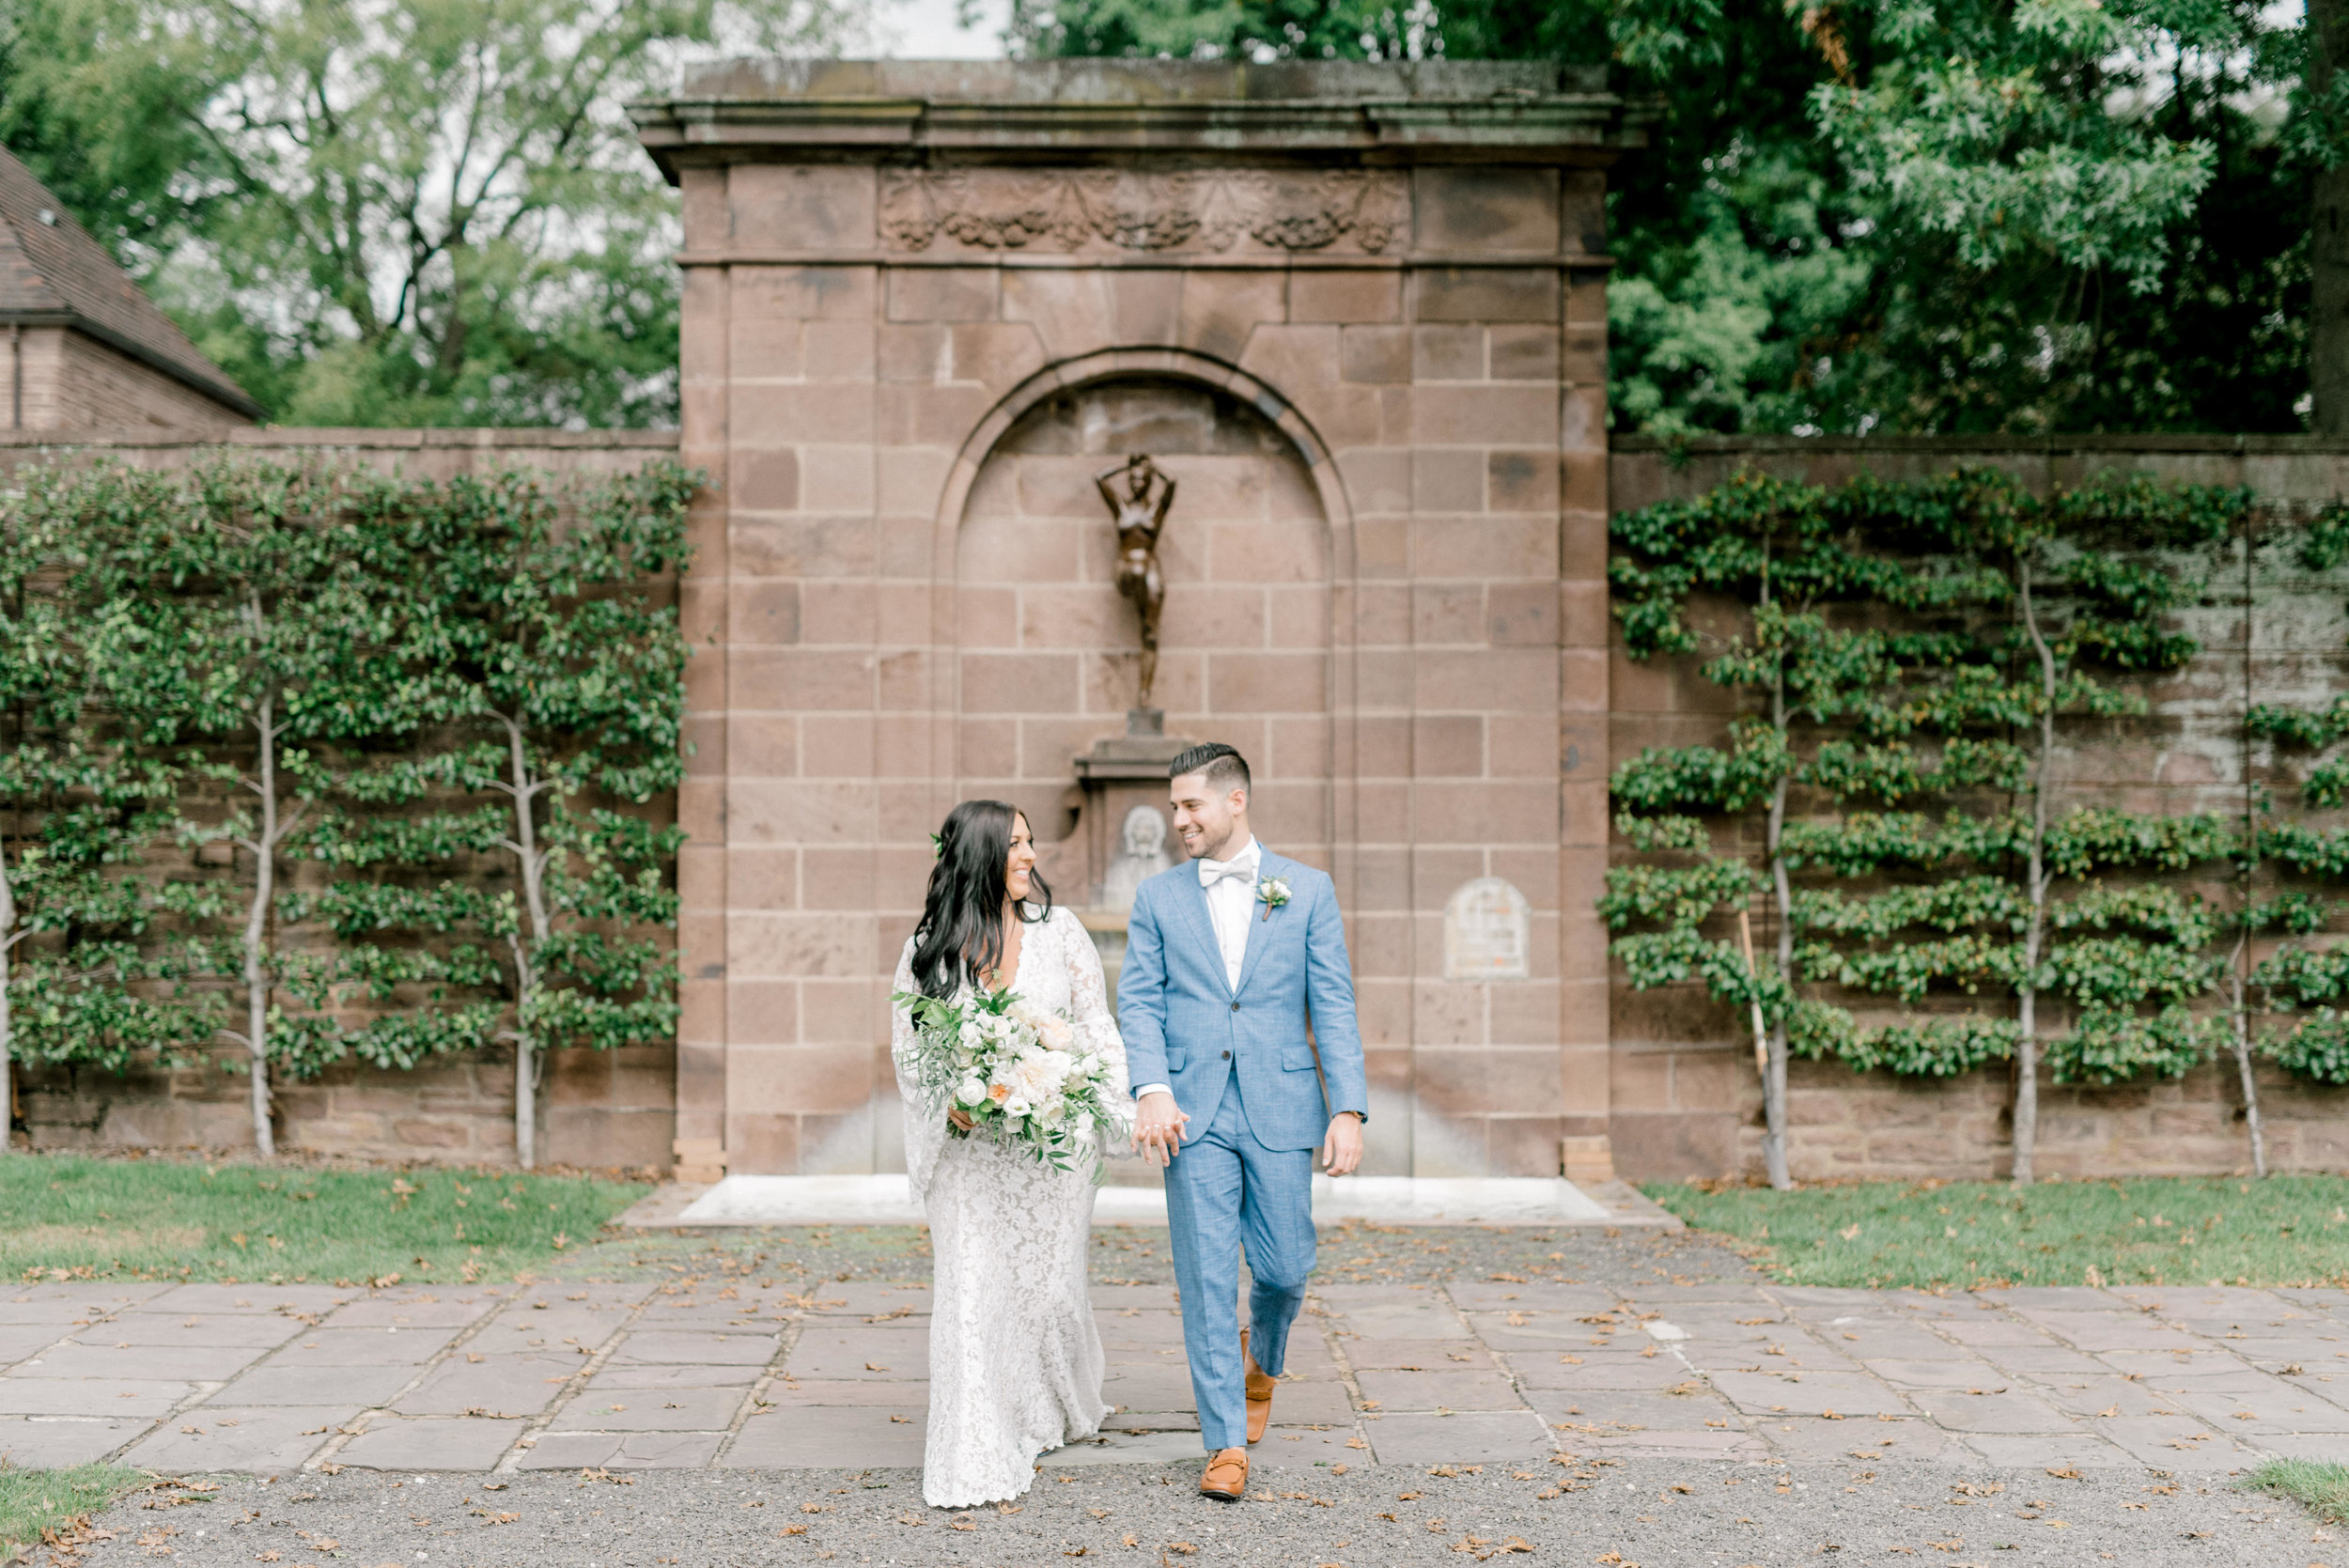 We absolutely adore the European vibes from these stone walls and arches and statues in this garden at this bright boho chic Tyler Gardens wedding in Bucks County